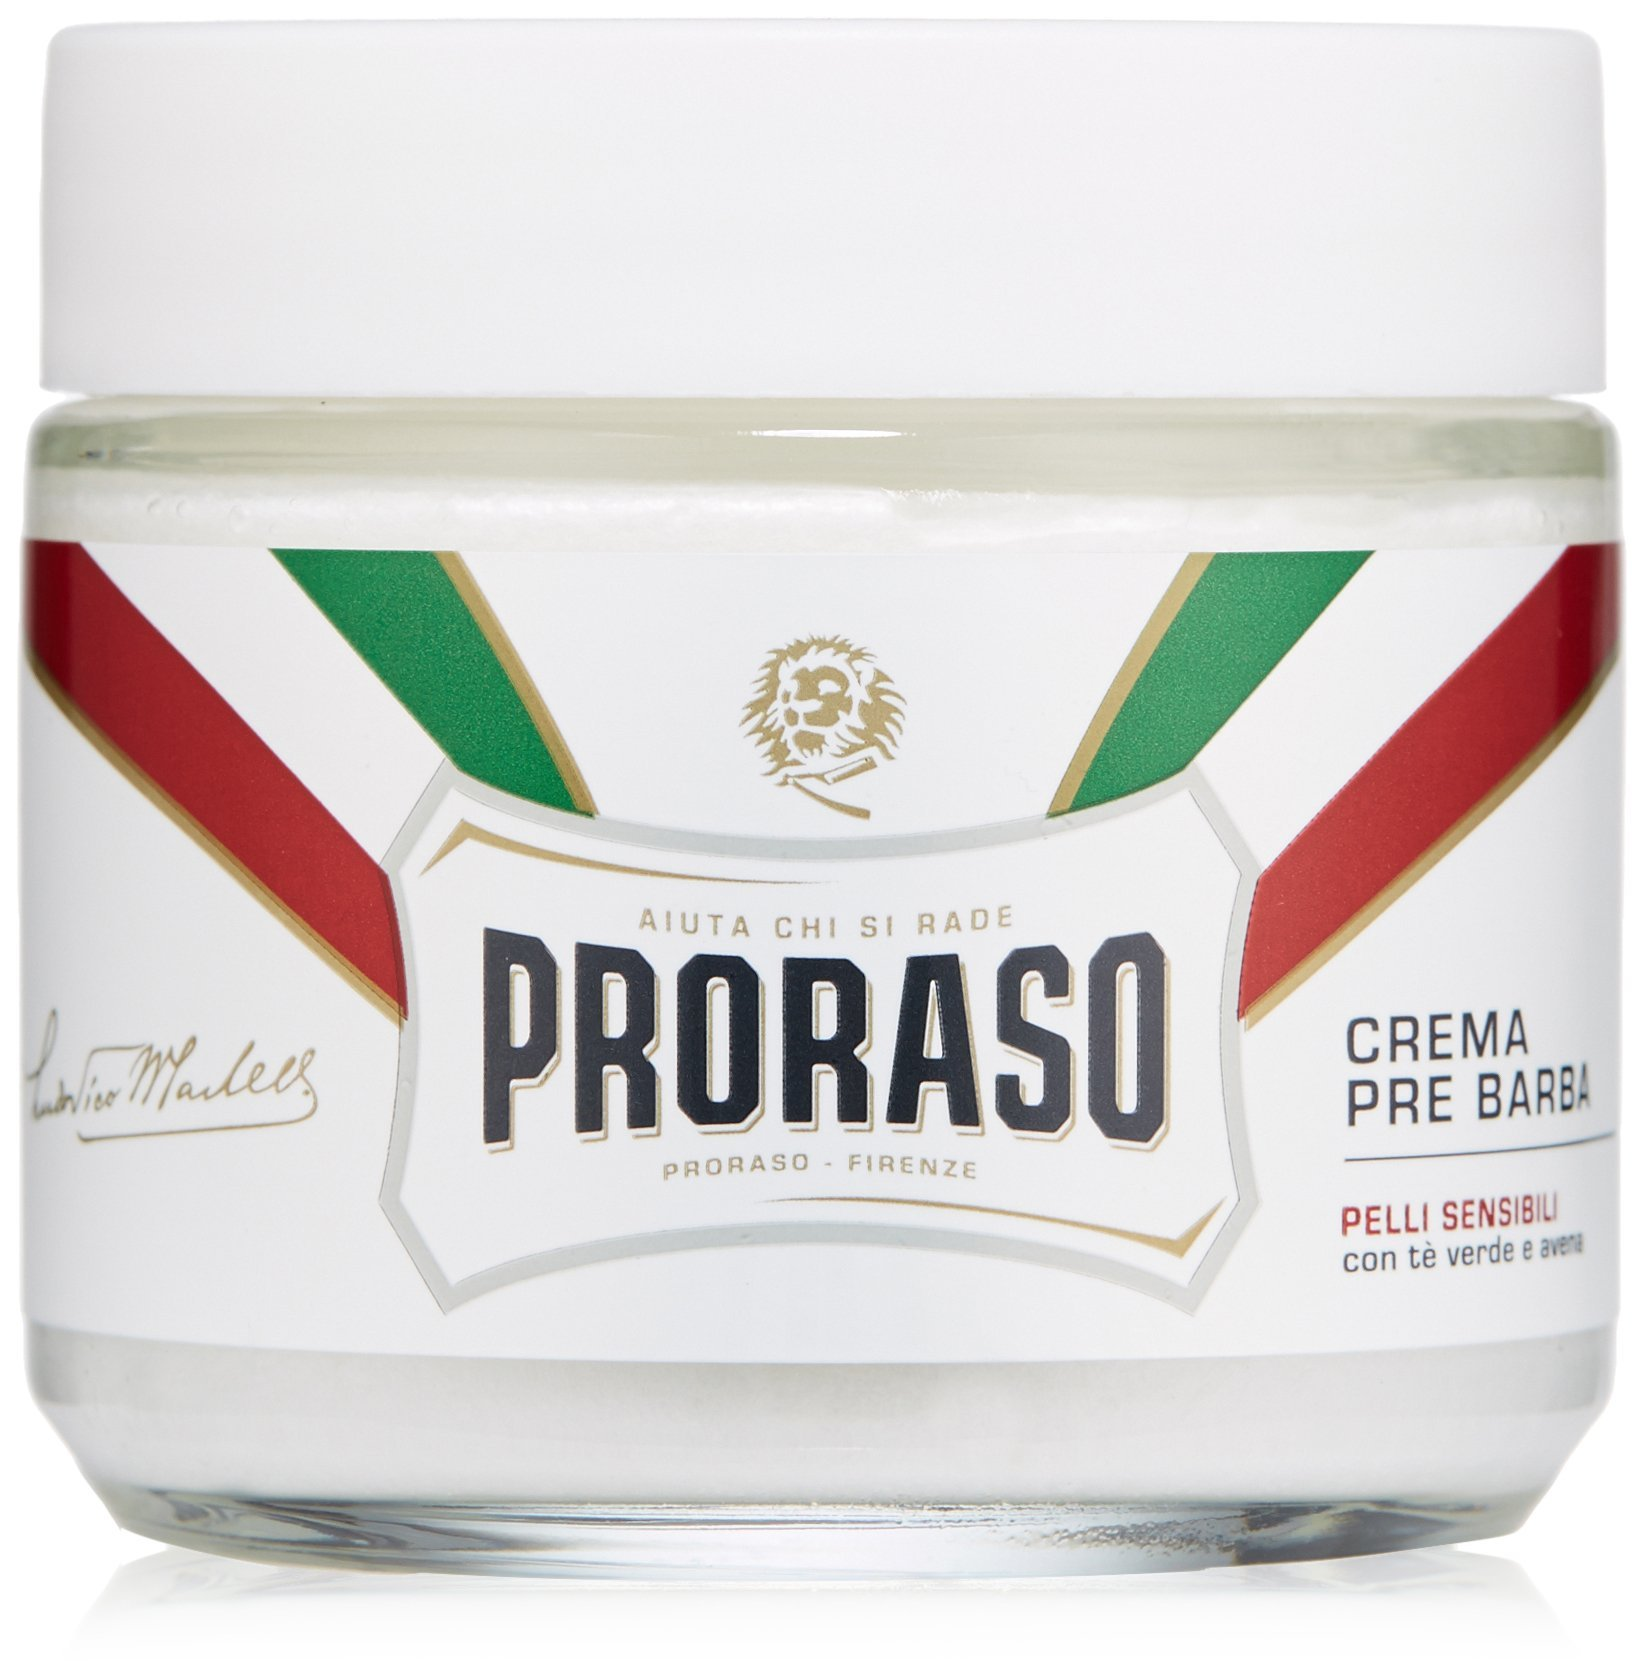 Proraso Pre-Shave Cream, Sensitive Skin, 3.6 oz (100 ml)